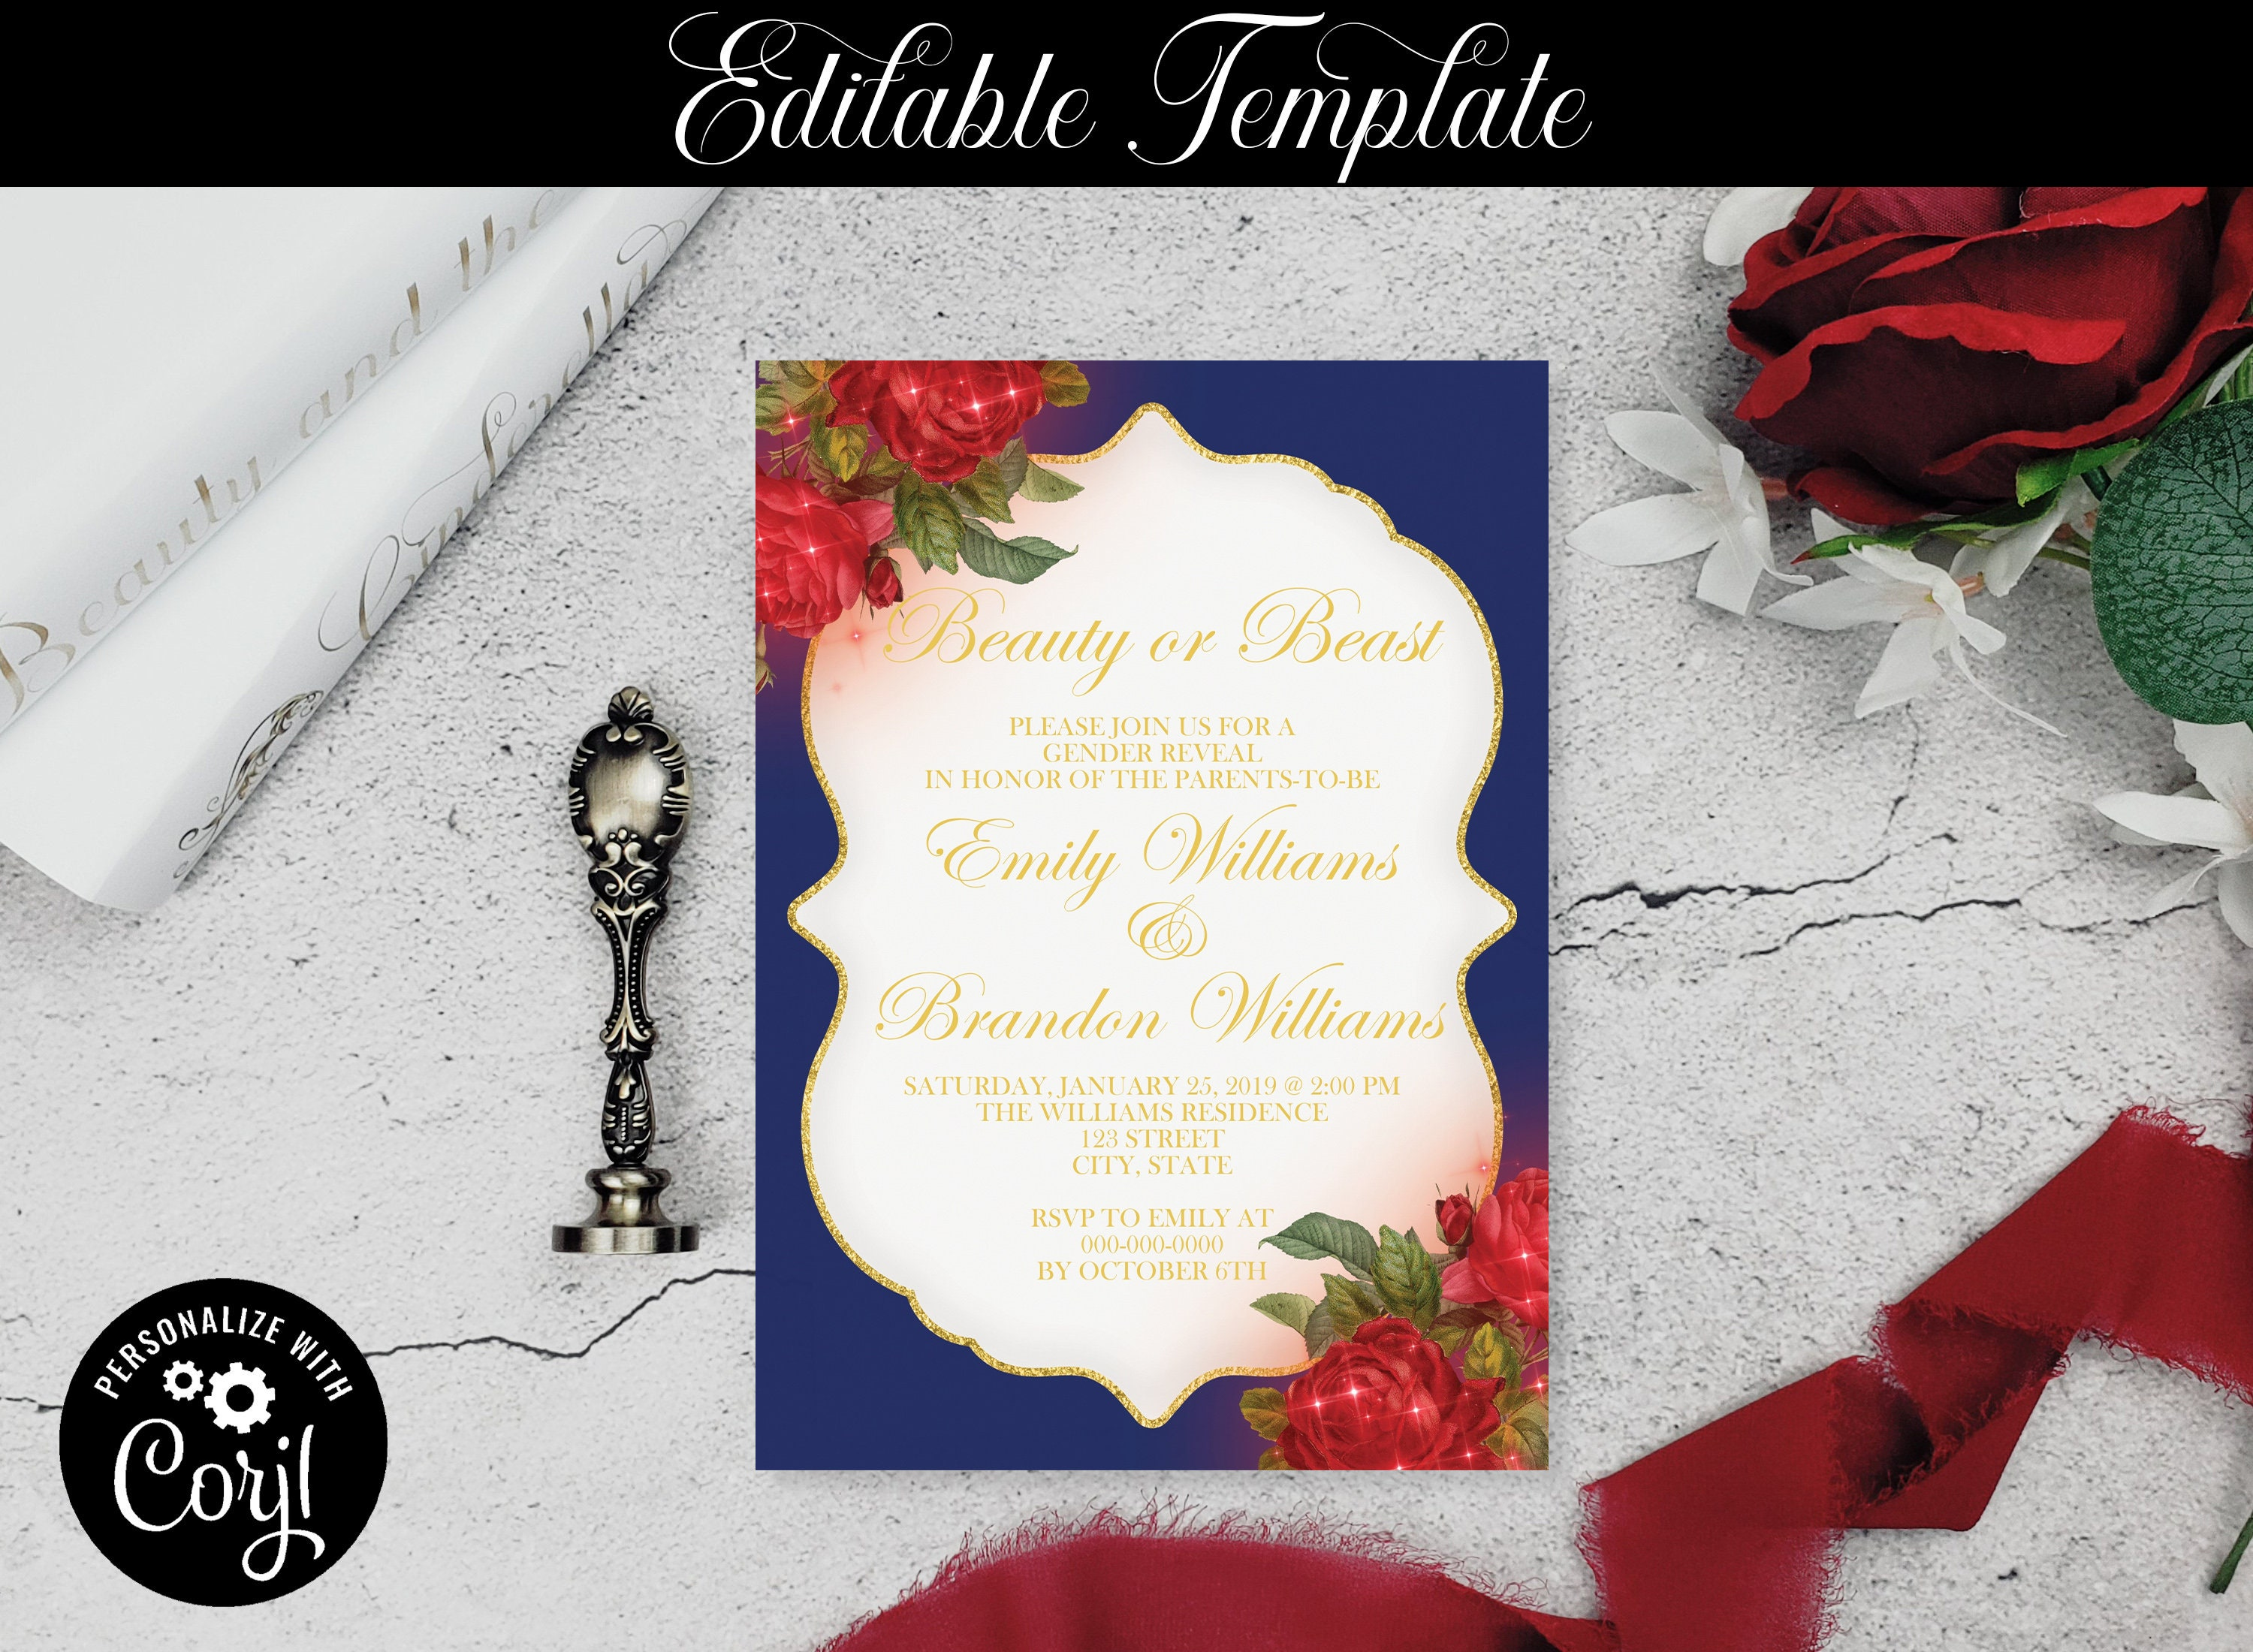 Rose Invitation Editable Template Fairytale Invite Invitation Template A1 Instant Download Beauty and the Beast Quinceanera Invitation